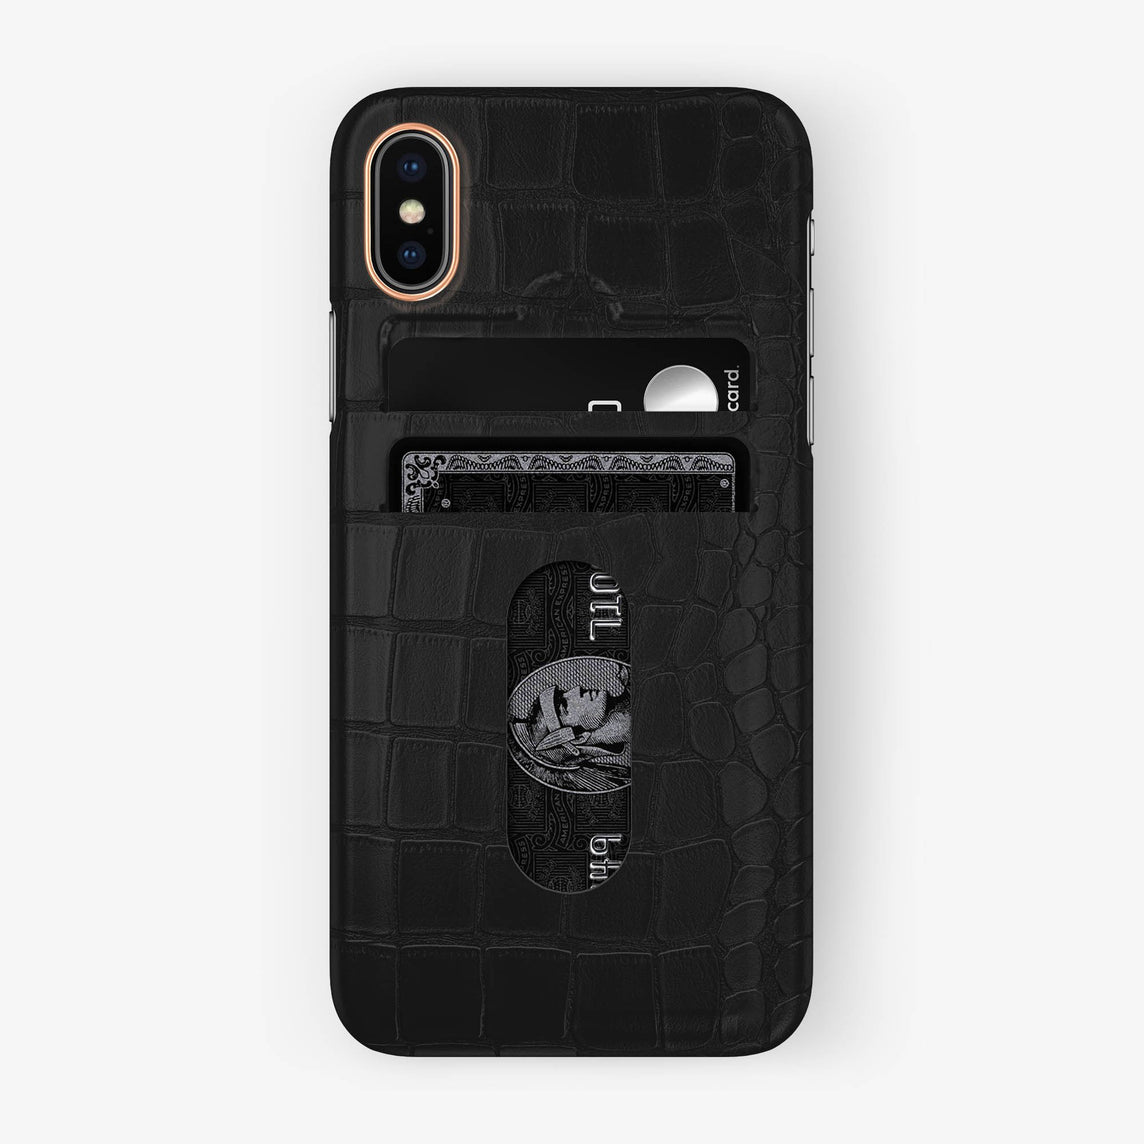 Alligator Card Holder Case iPhone X/Xs | Phantom Black - Rose Gold - Hadoro